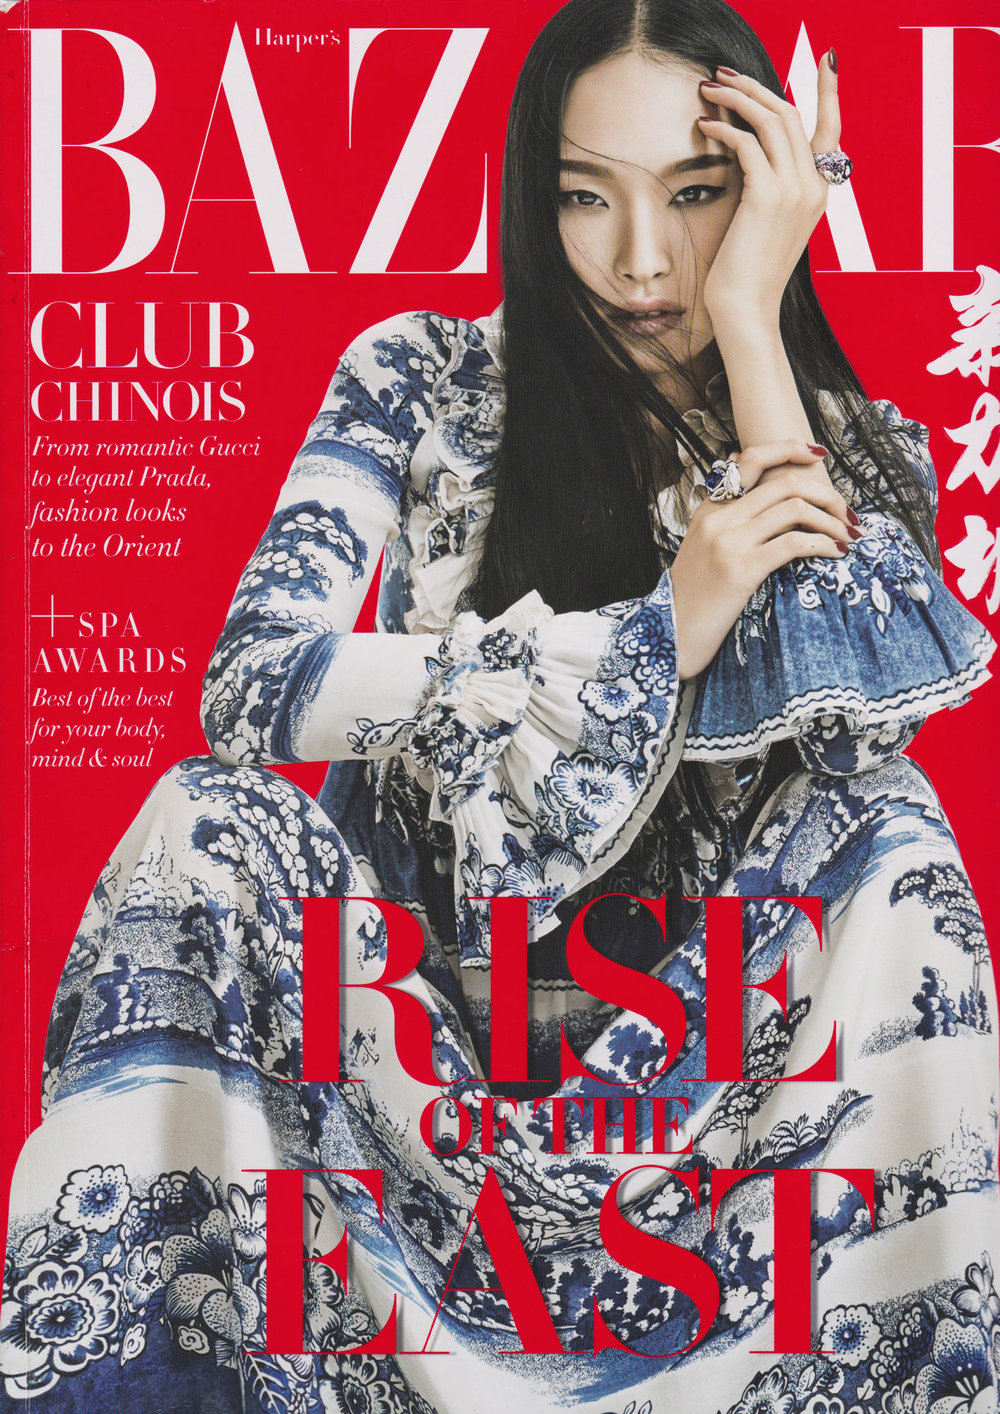 Harper's-Bazaar--Feb-2017-Cover.jpg